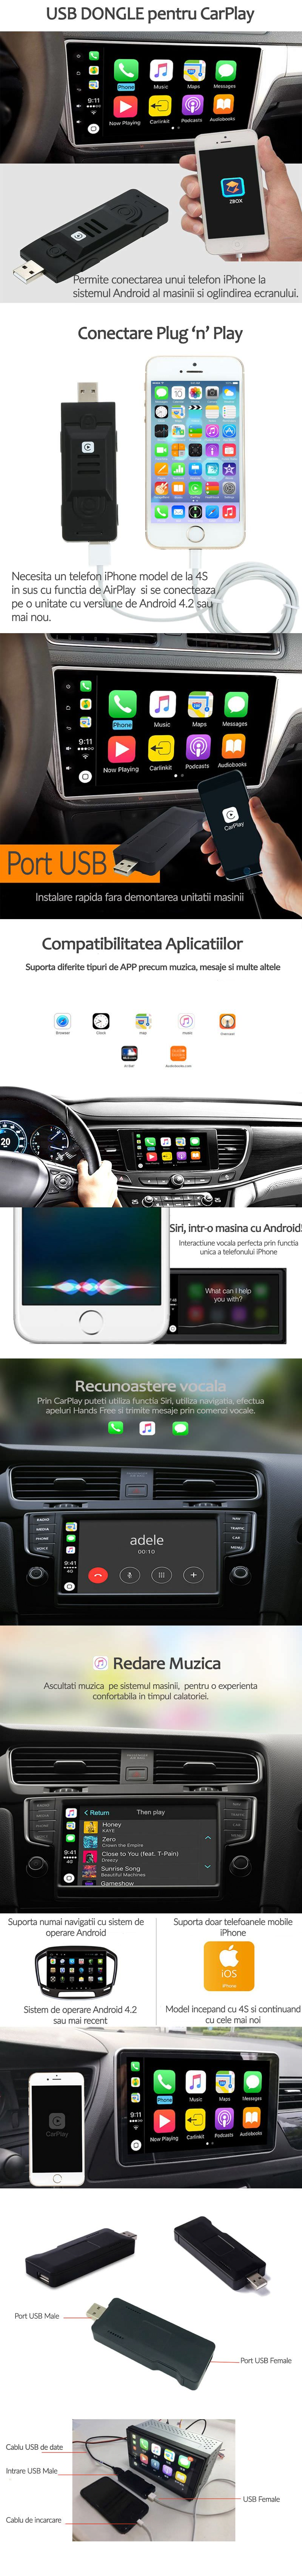 USB Dongle pentru CarPlay